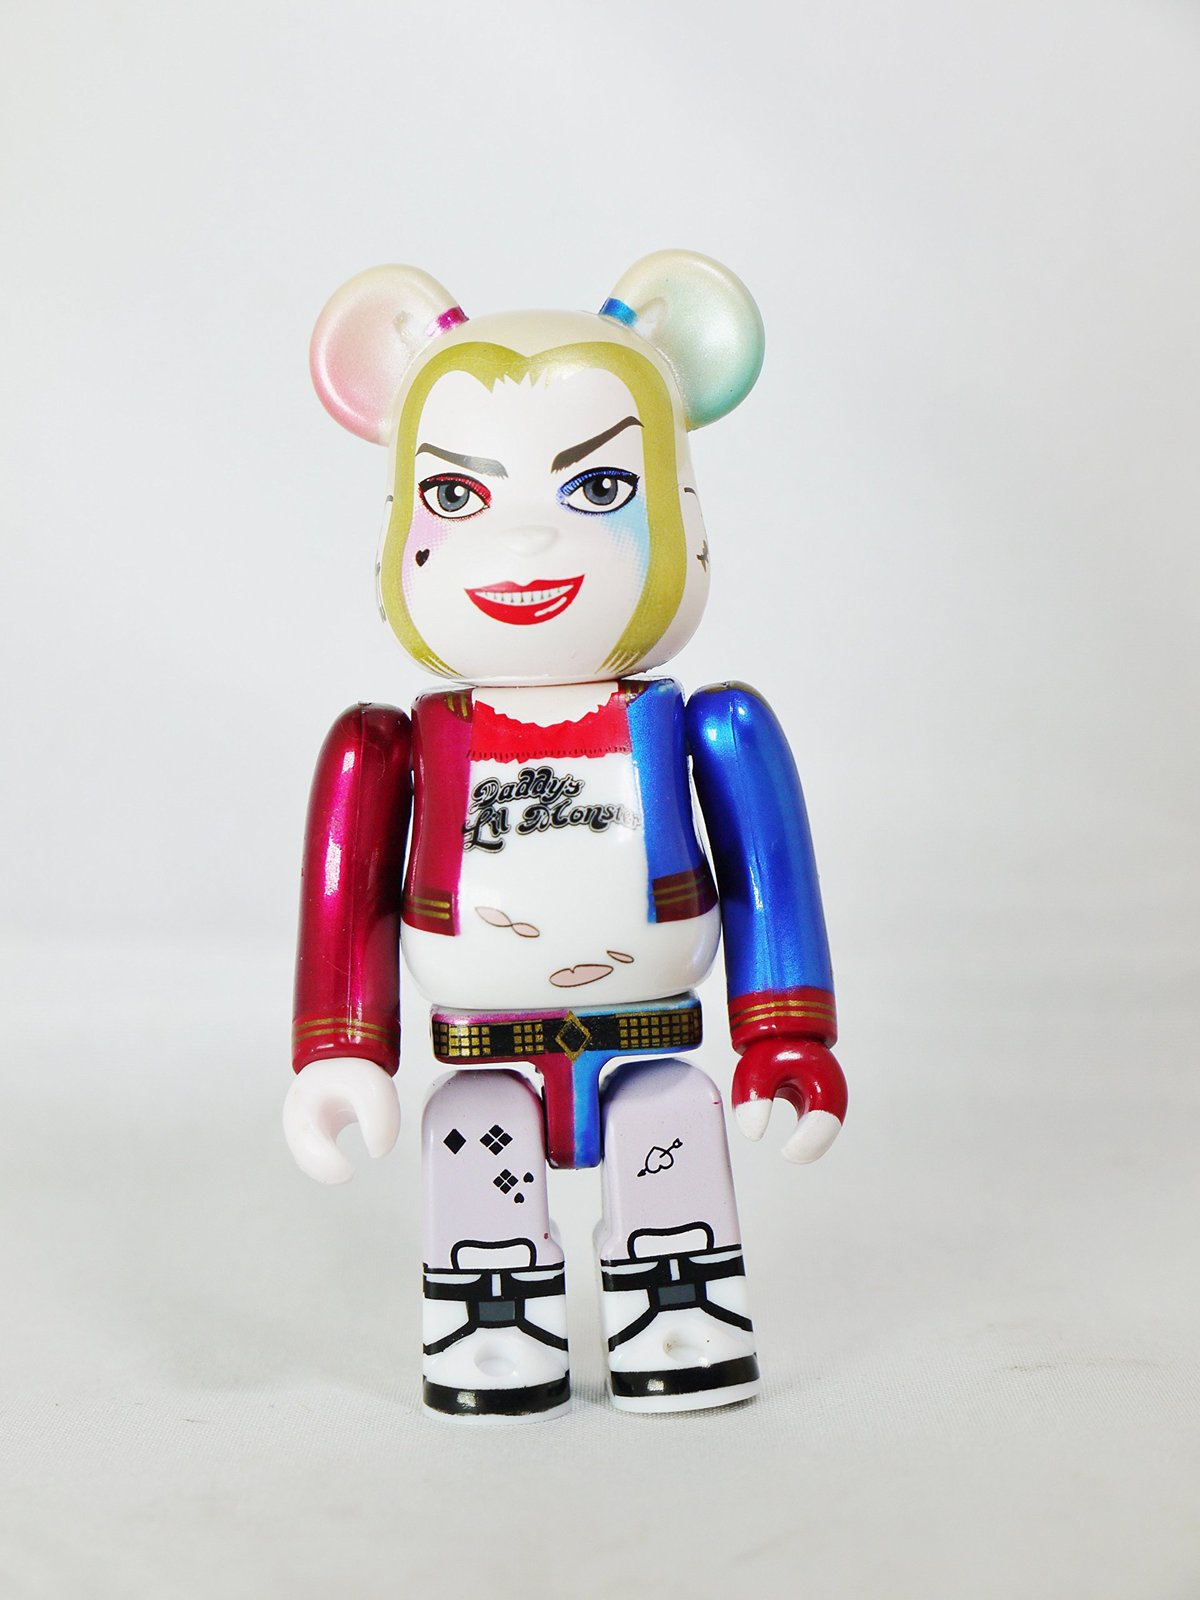 6813f253 Medicom Toy Be@Rbrick Bearbrick 100% Series and 50 similar items